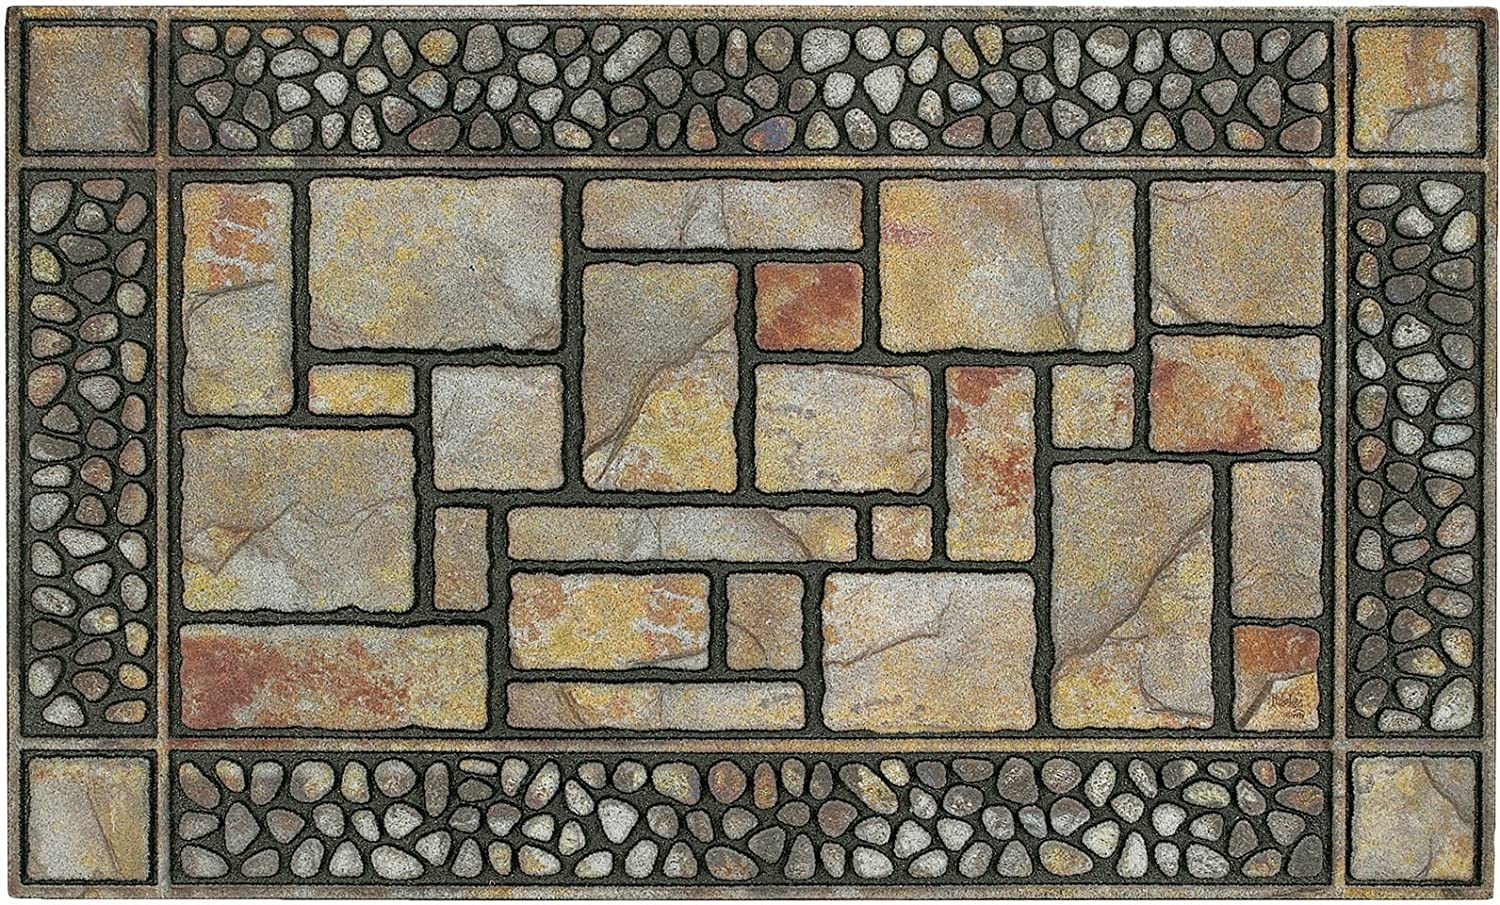 "Mohawk Home 4259 12914 018030 Doorscapes Patio Stones Door Mat, 1'6x2'6, 1'6"" x 2'6"", Brown"